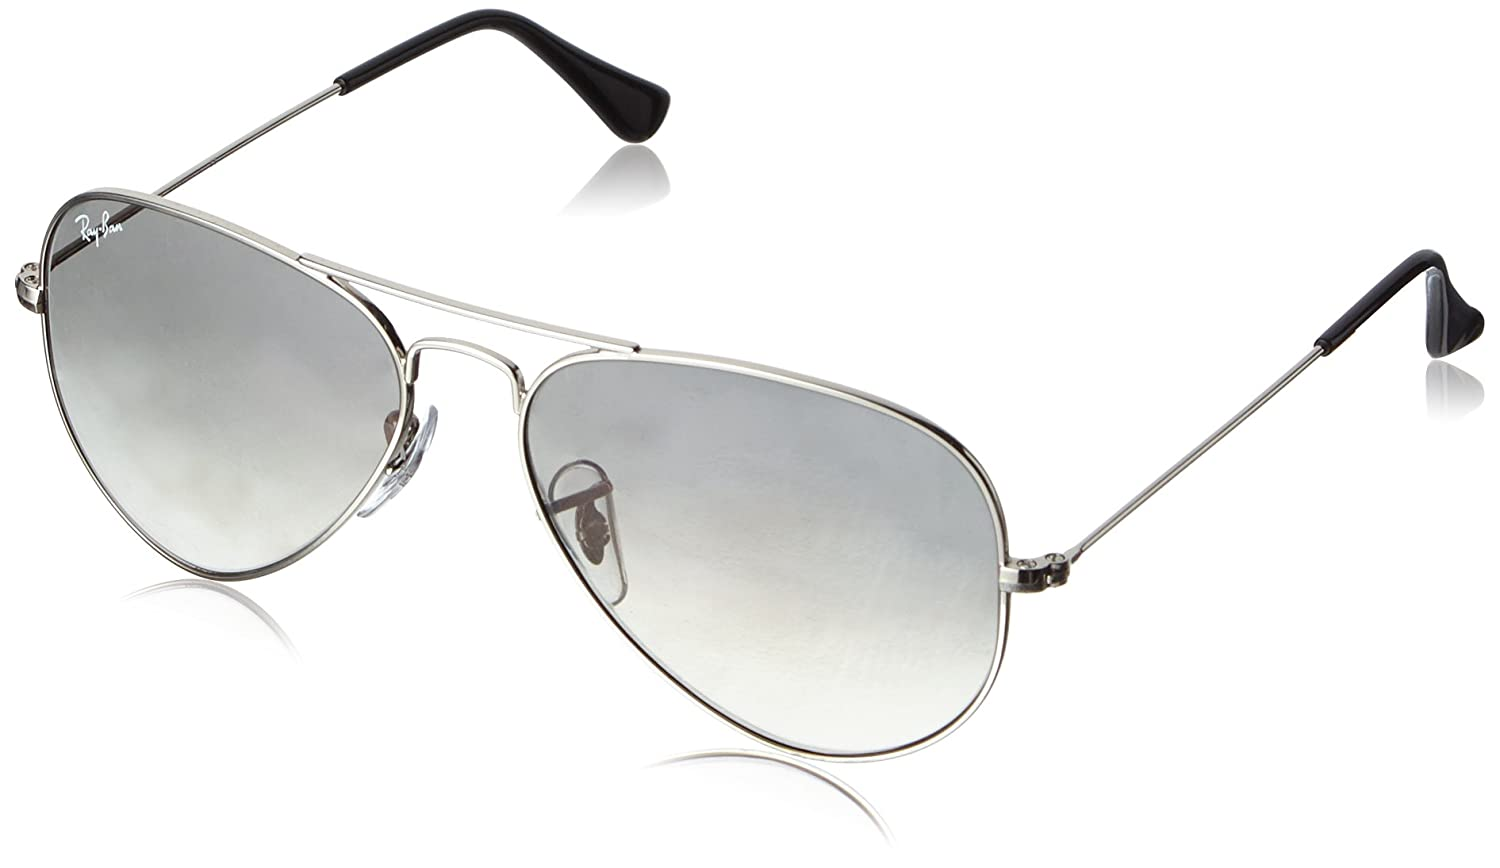 ray ban aviator silver  amazon: ray ban 0rb3025 aviator metal non polarized sunglasses, silver/ crystal grey gradient, 55mm: ray ban: clothing